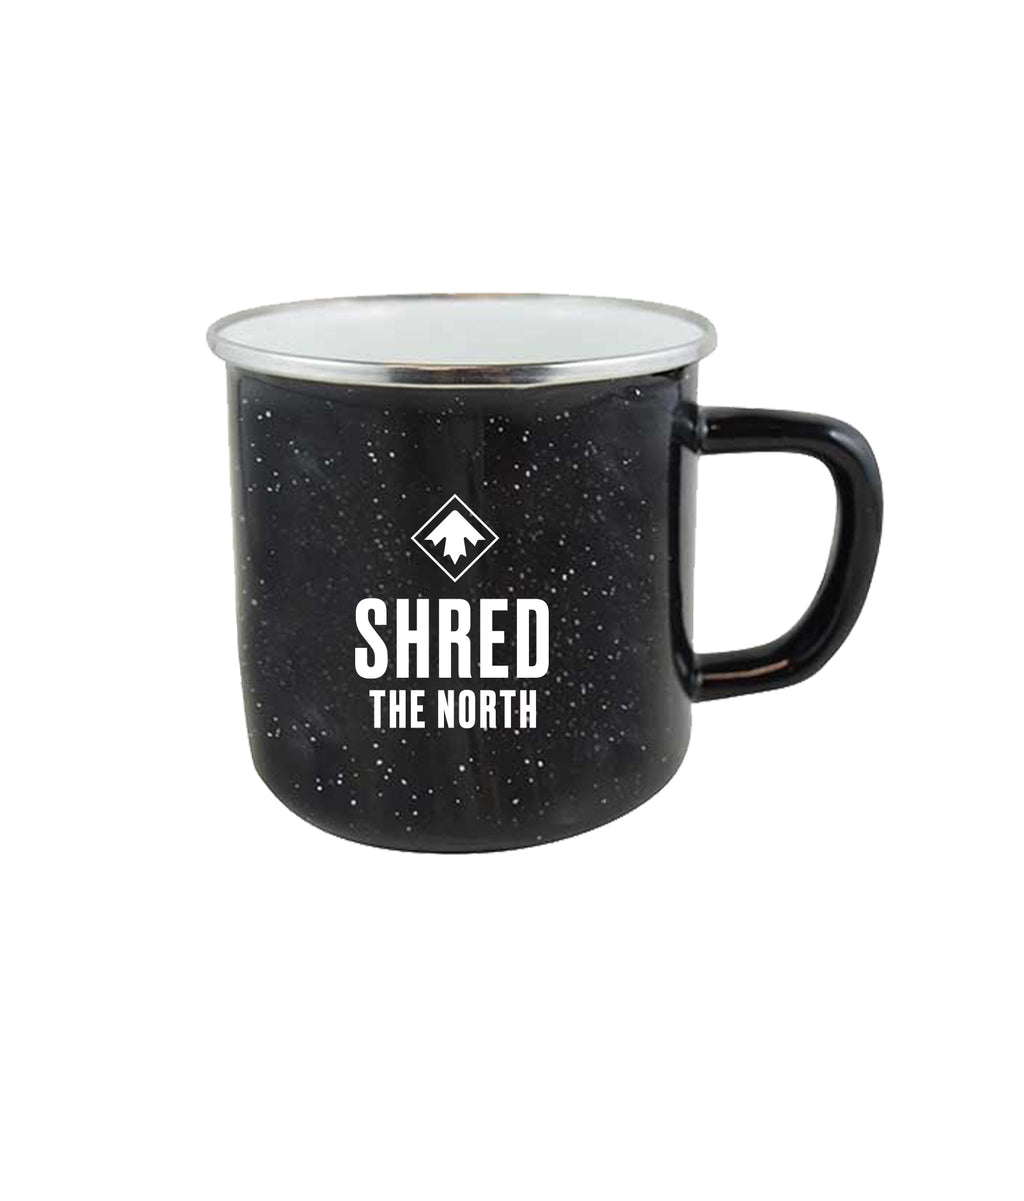 SHRED THE NORTH MUG